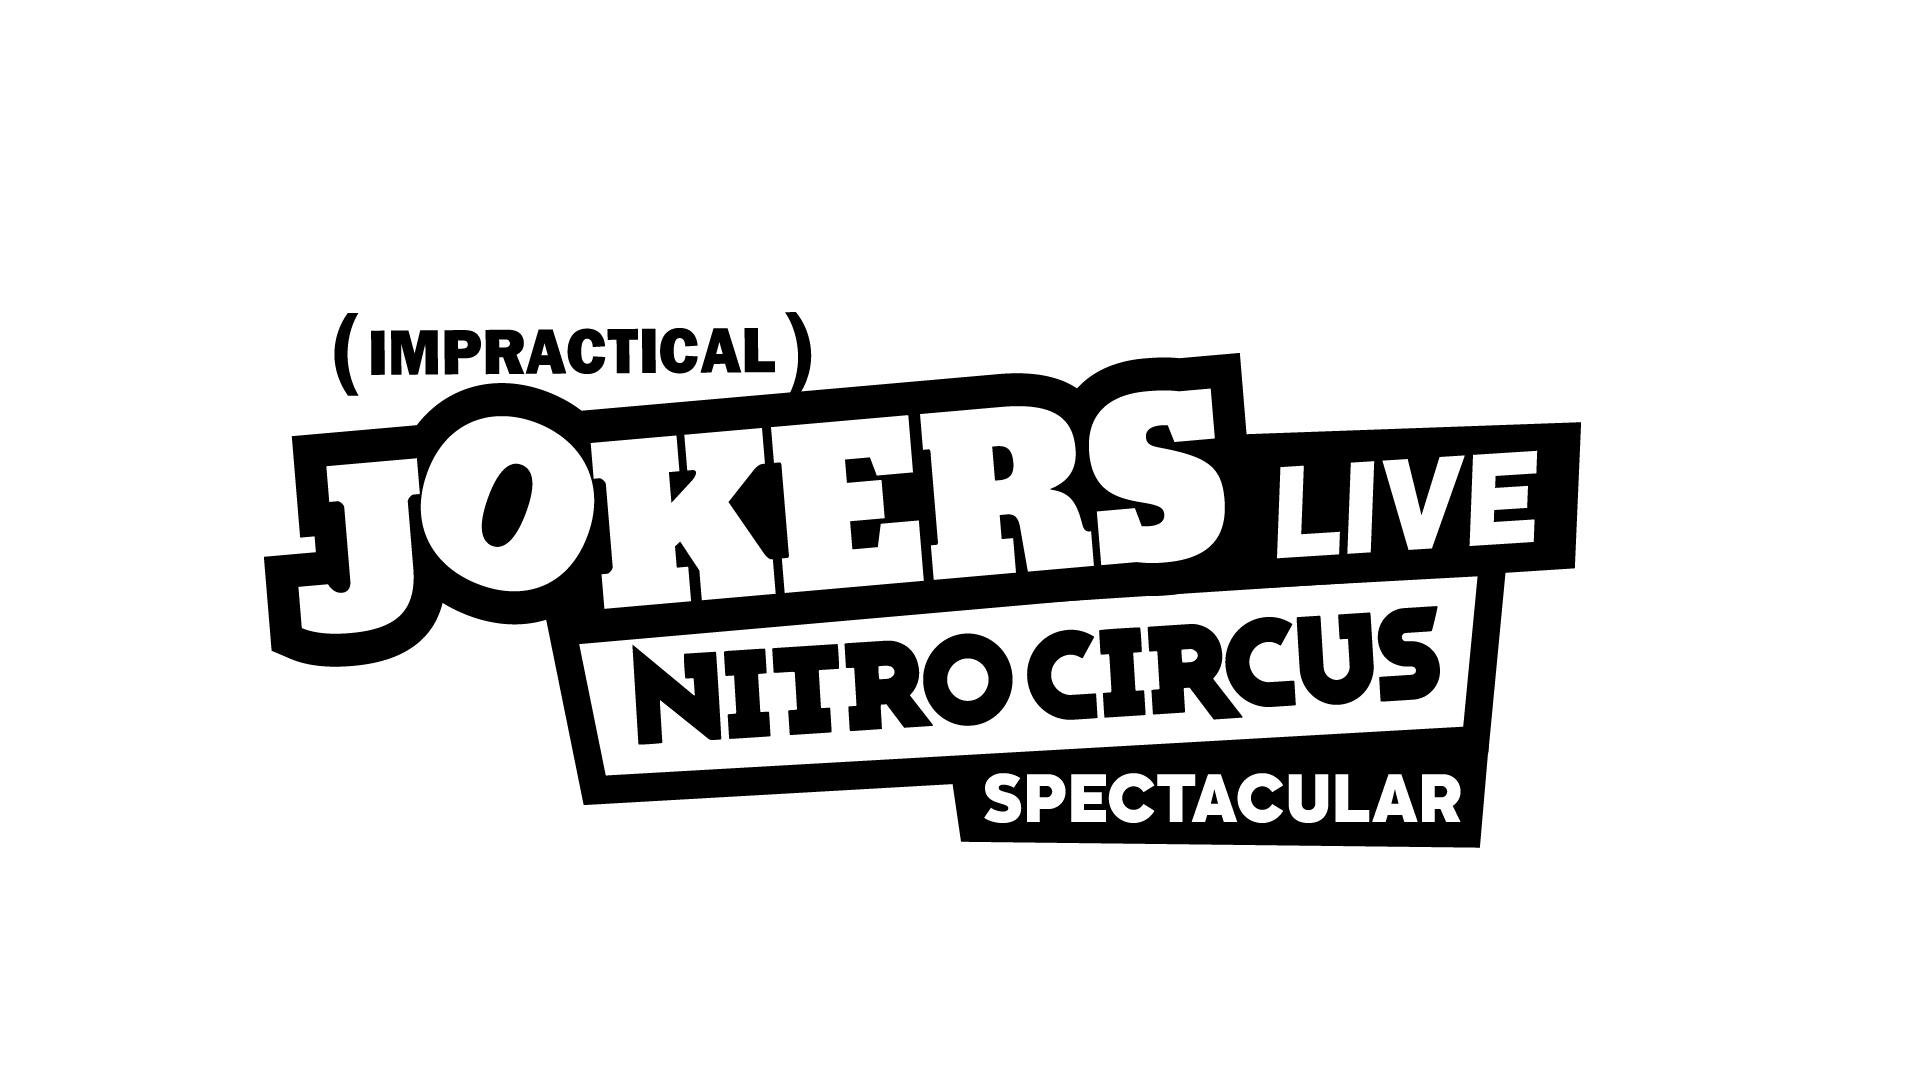 1920x1080 Impractical Jokers Live: Nitro Circus Spectacular – Win A Trip To See It  Live! | 98 KUPD - Arizona's Real Rock